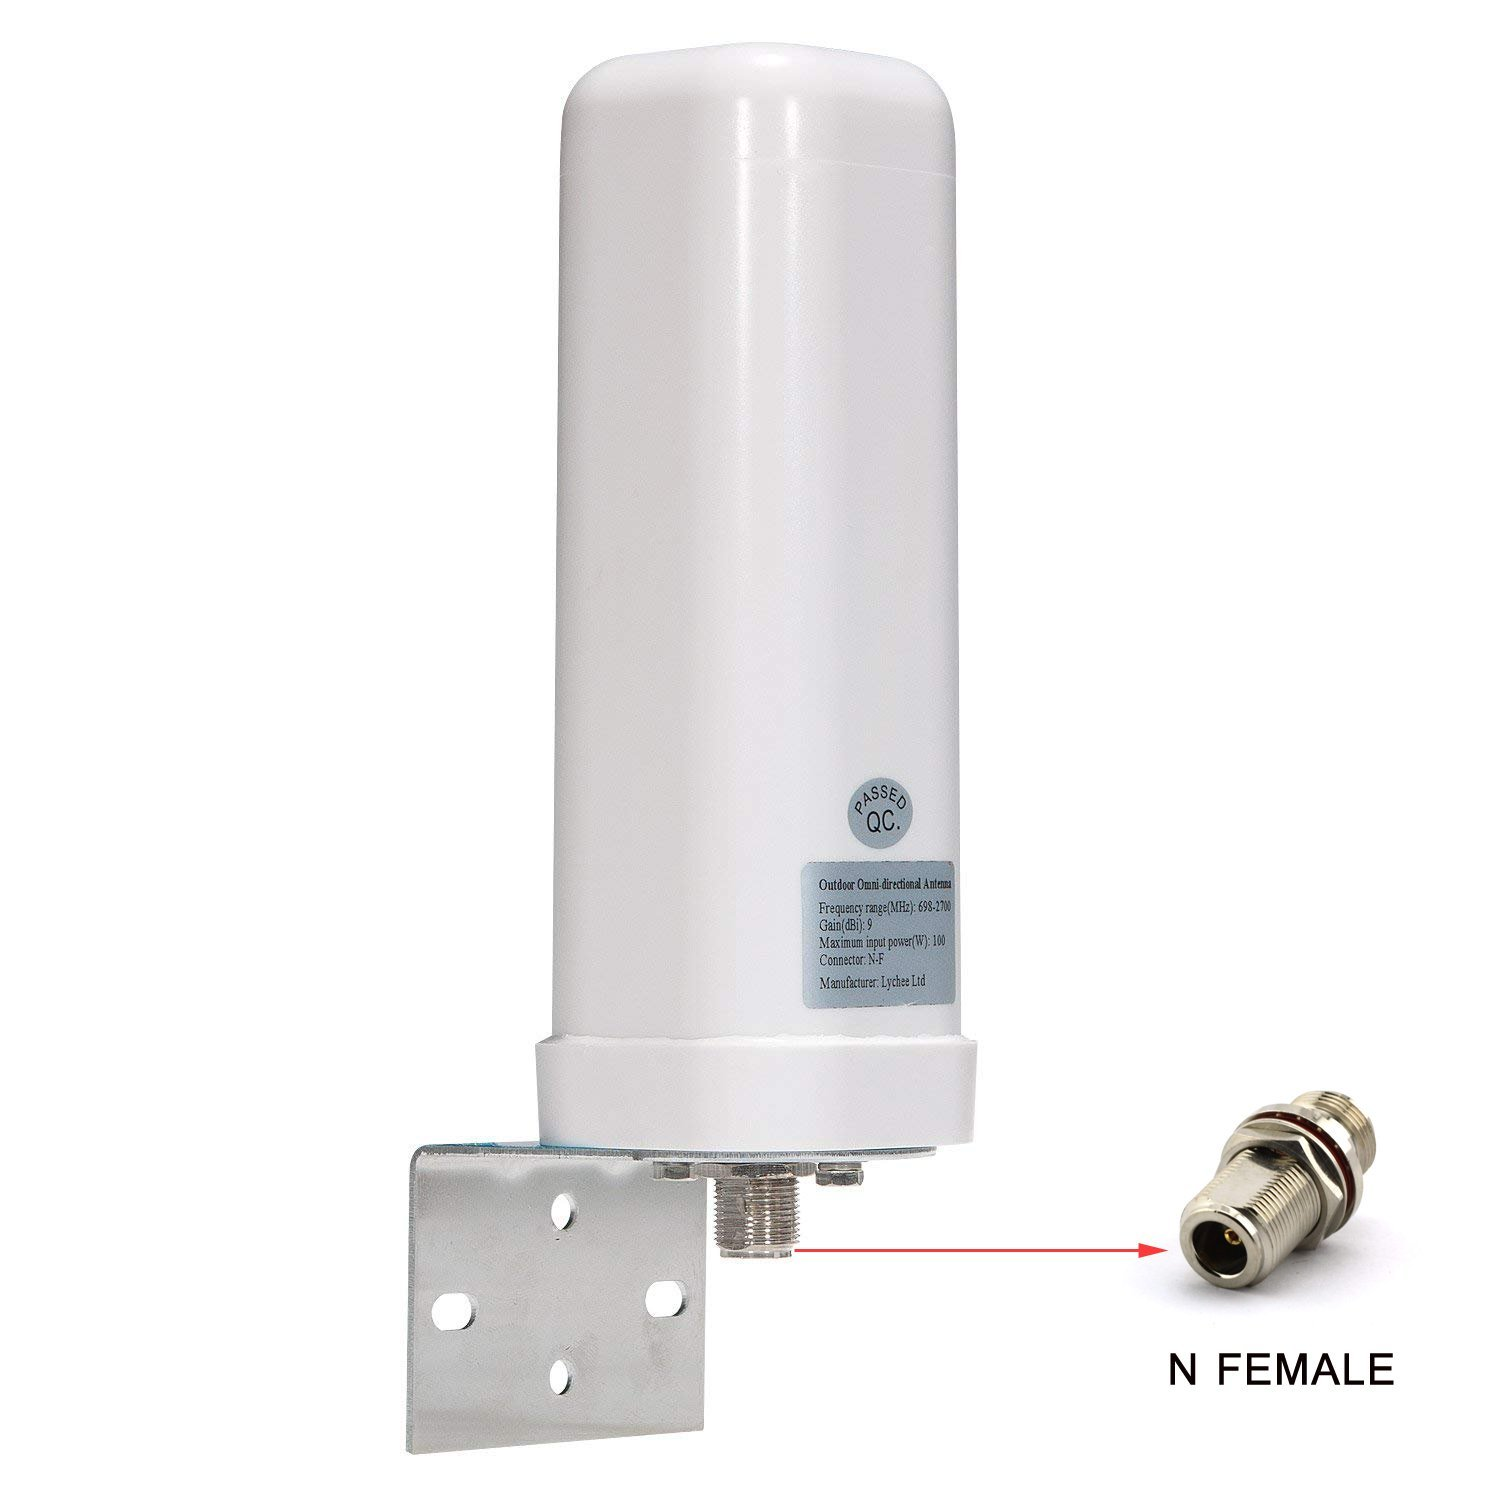 Lysignal Outdoor Omni-directional Antenna 698 to 2700MHz 9dBi for Moble Signal Booster LYCHEE LIMITED 06-022-043